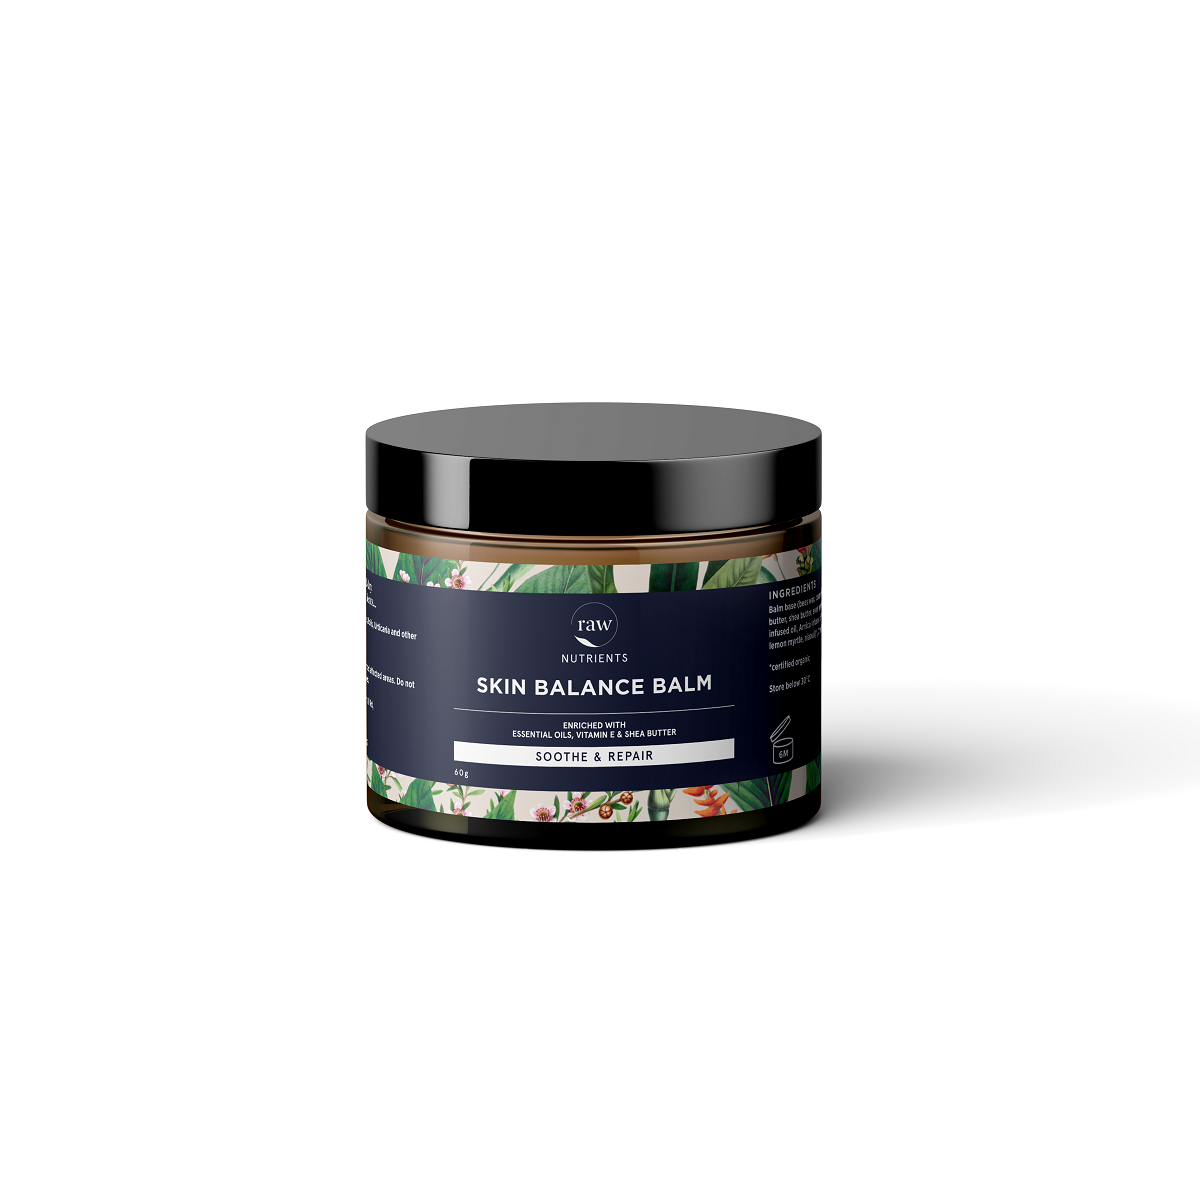 Raw Nutrients Skin Balance Balm